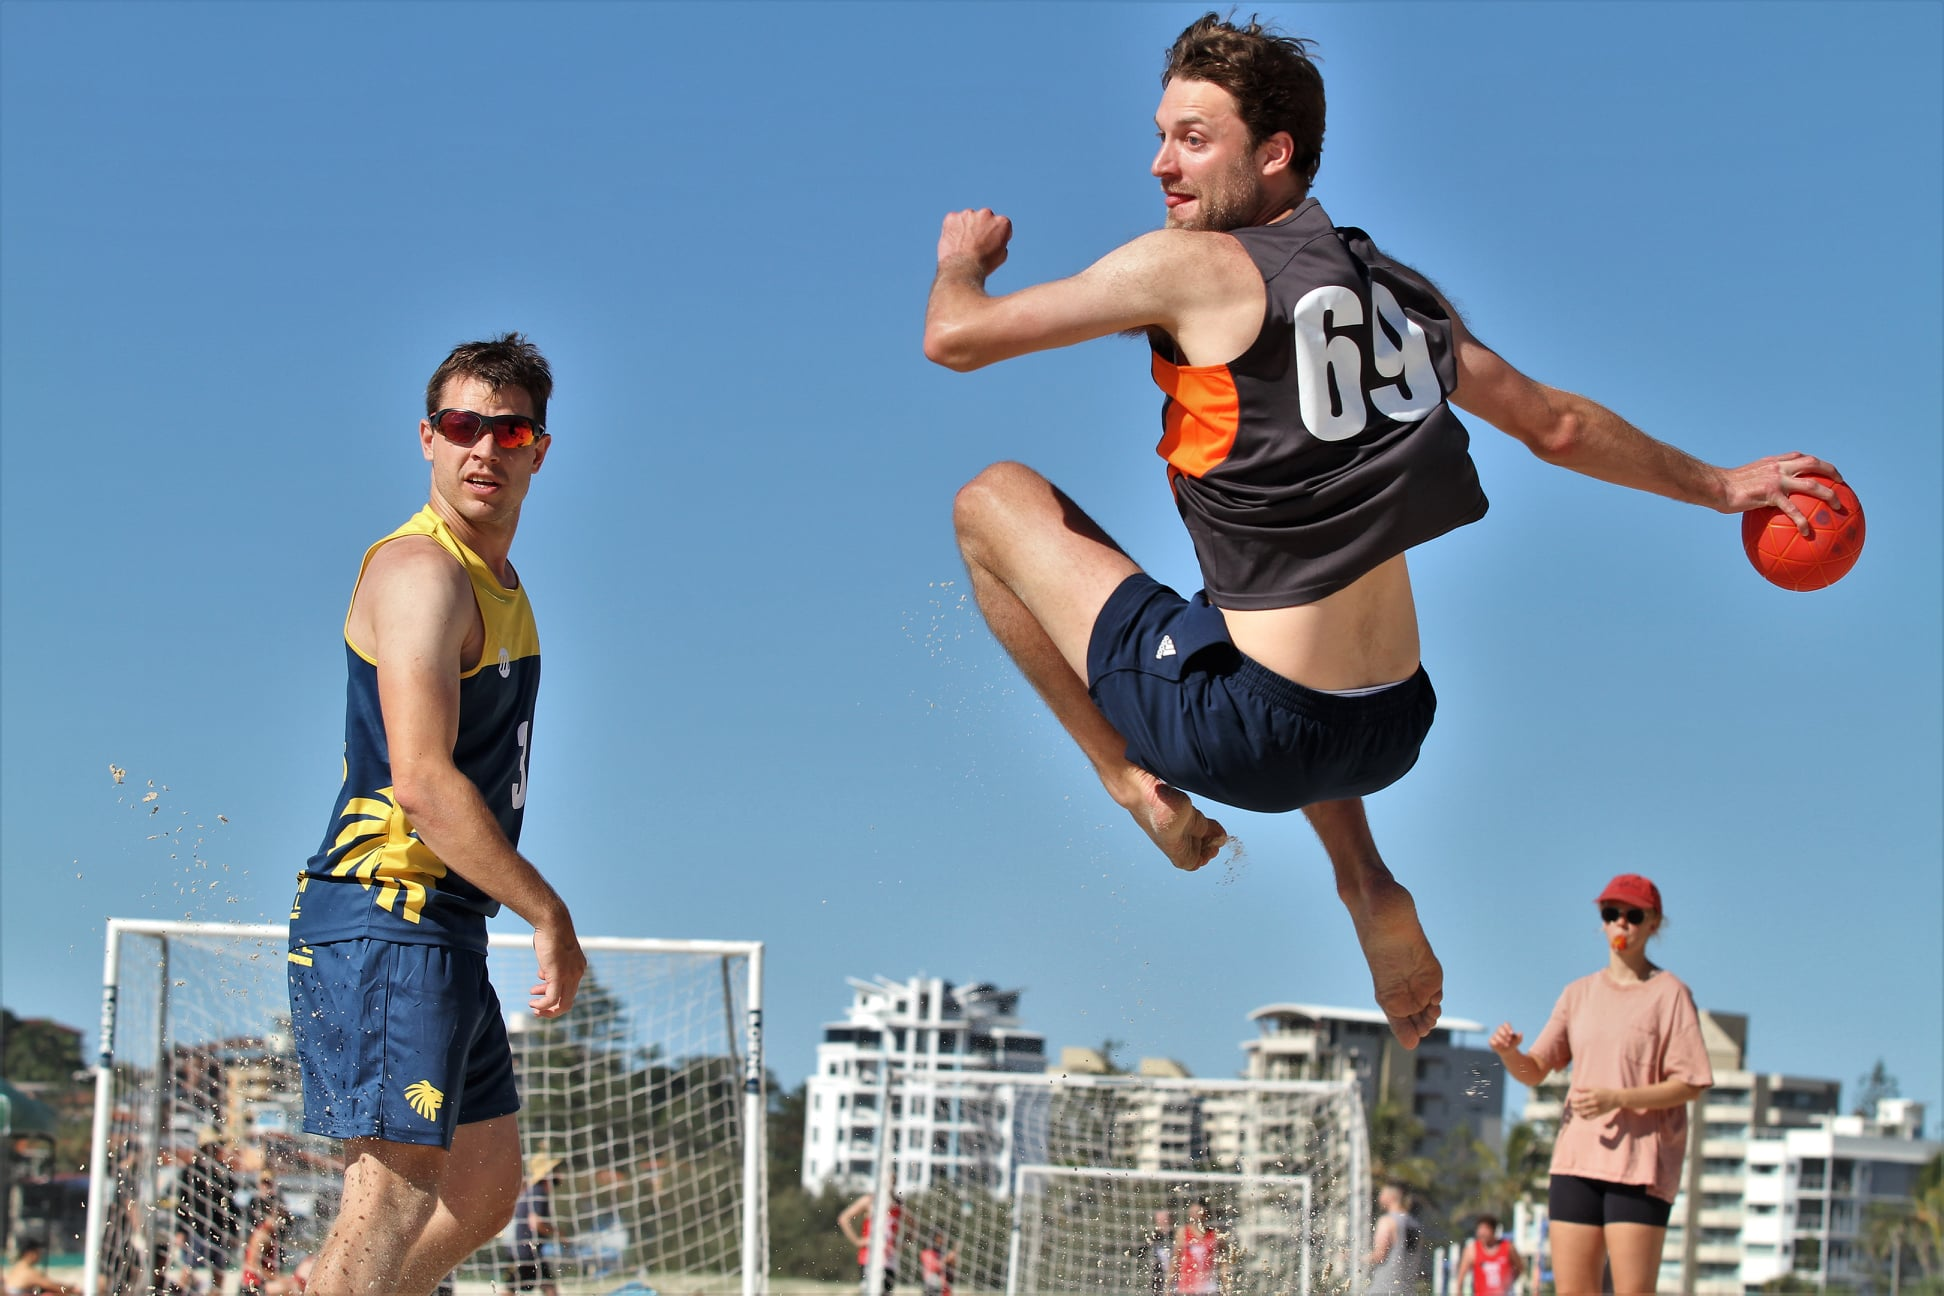 A player wearing a black singlet in mid-air about to throw a red ball in hand while another player wearing a blue singlet and sunglasses watches on. In the bacground, referee is seen with whistle in mouth